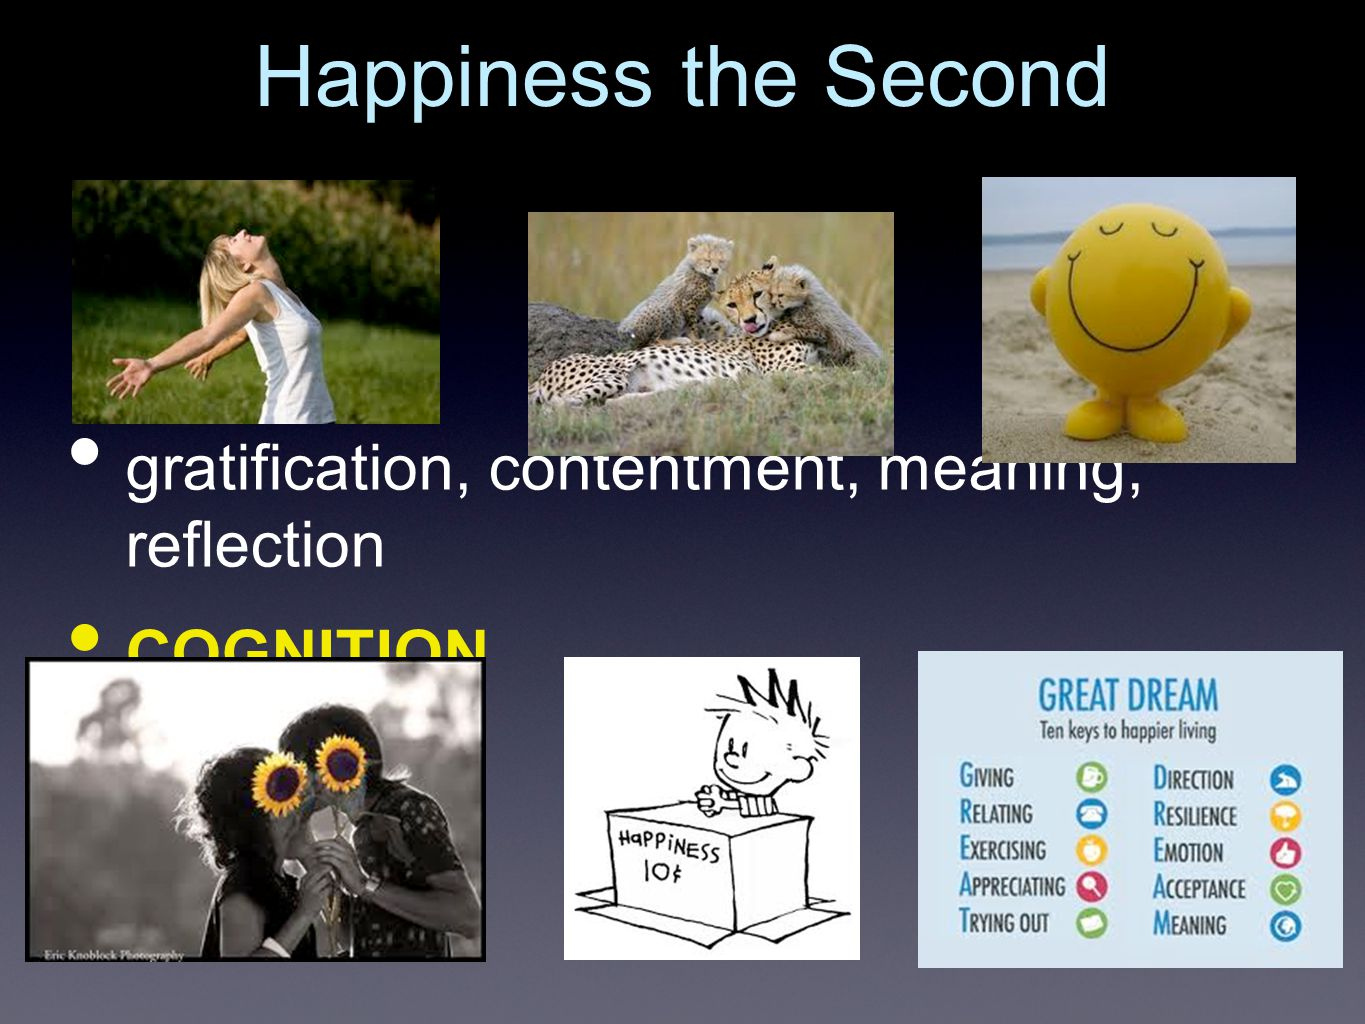 fulfilment and meaning momentary rewards Time Happiness is (1) how you feel and (2) how you interpret that in the greater context of your life